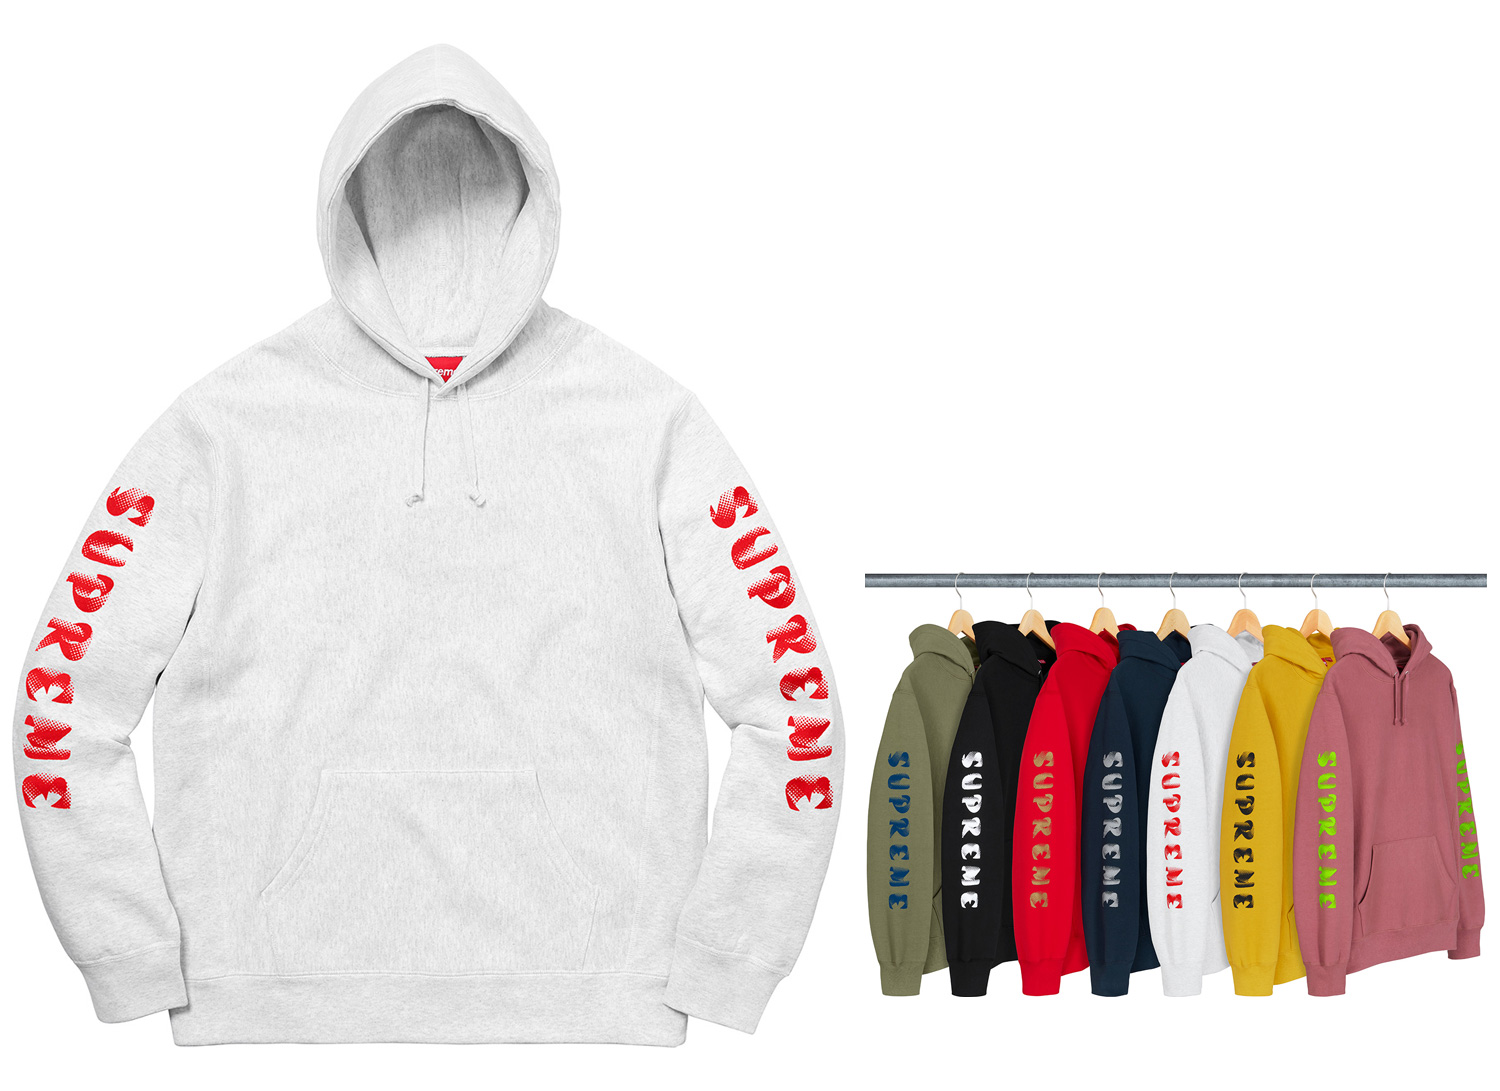 Gradient Sleeve Hooded Sweatshirt